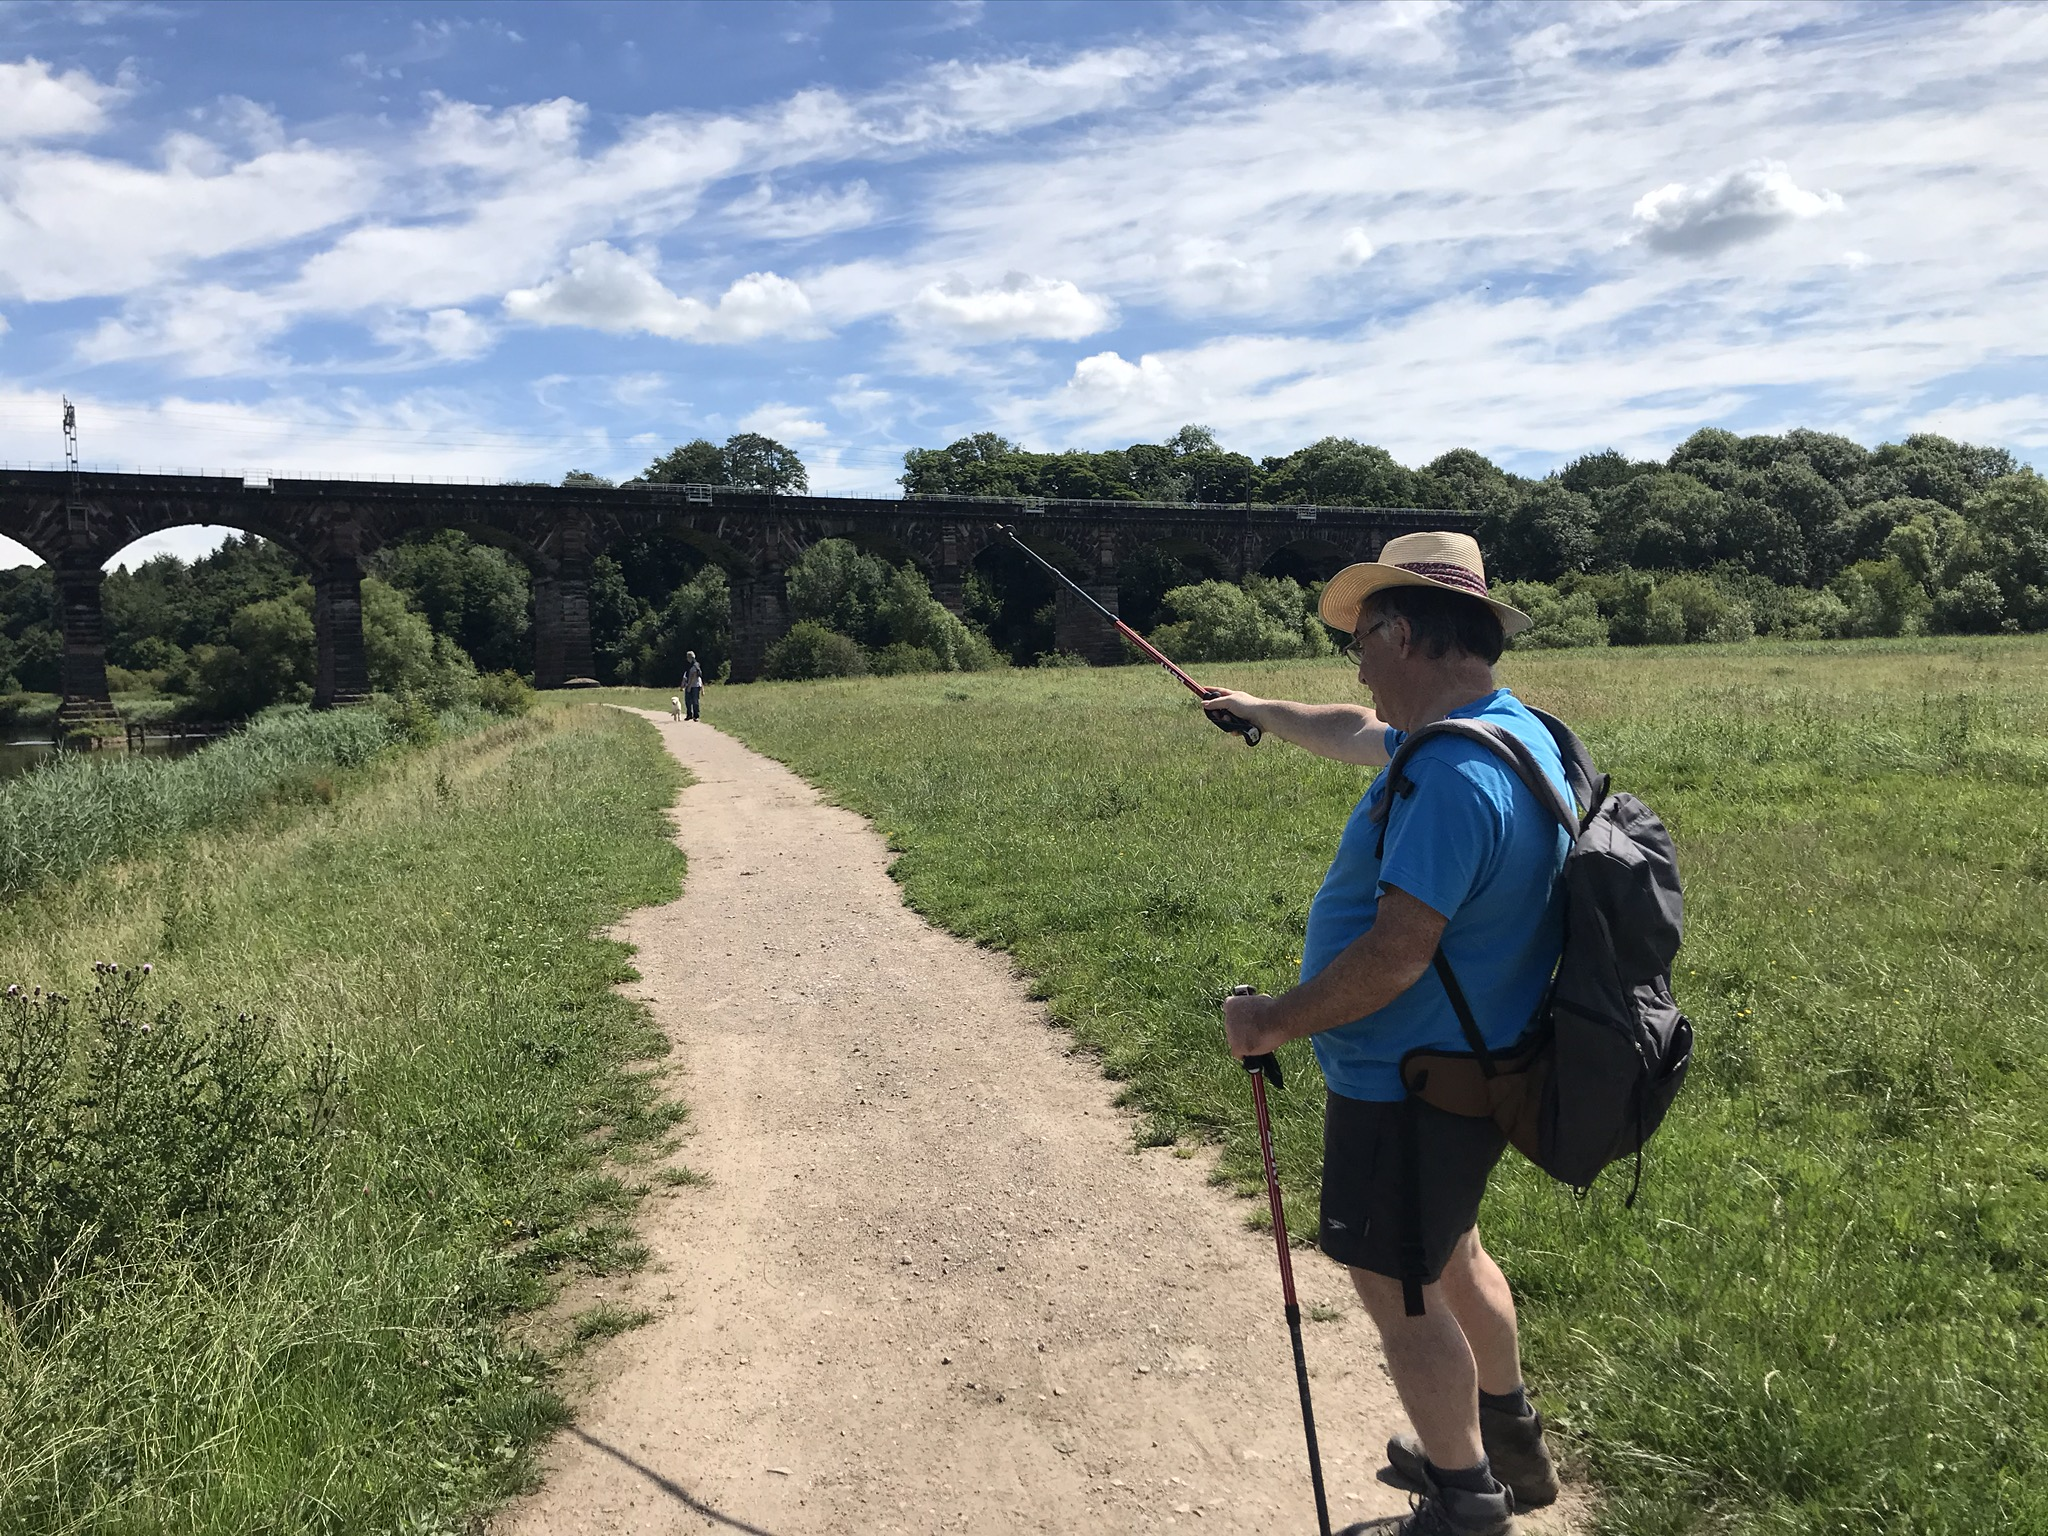 A walker points his walking poles at a train travelling along a viaduct